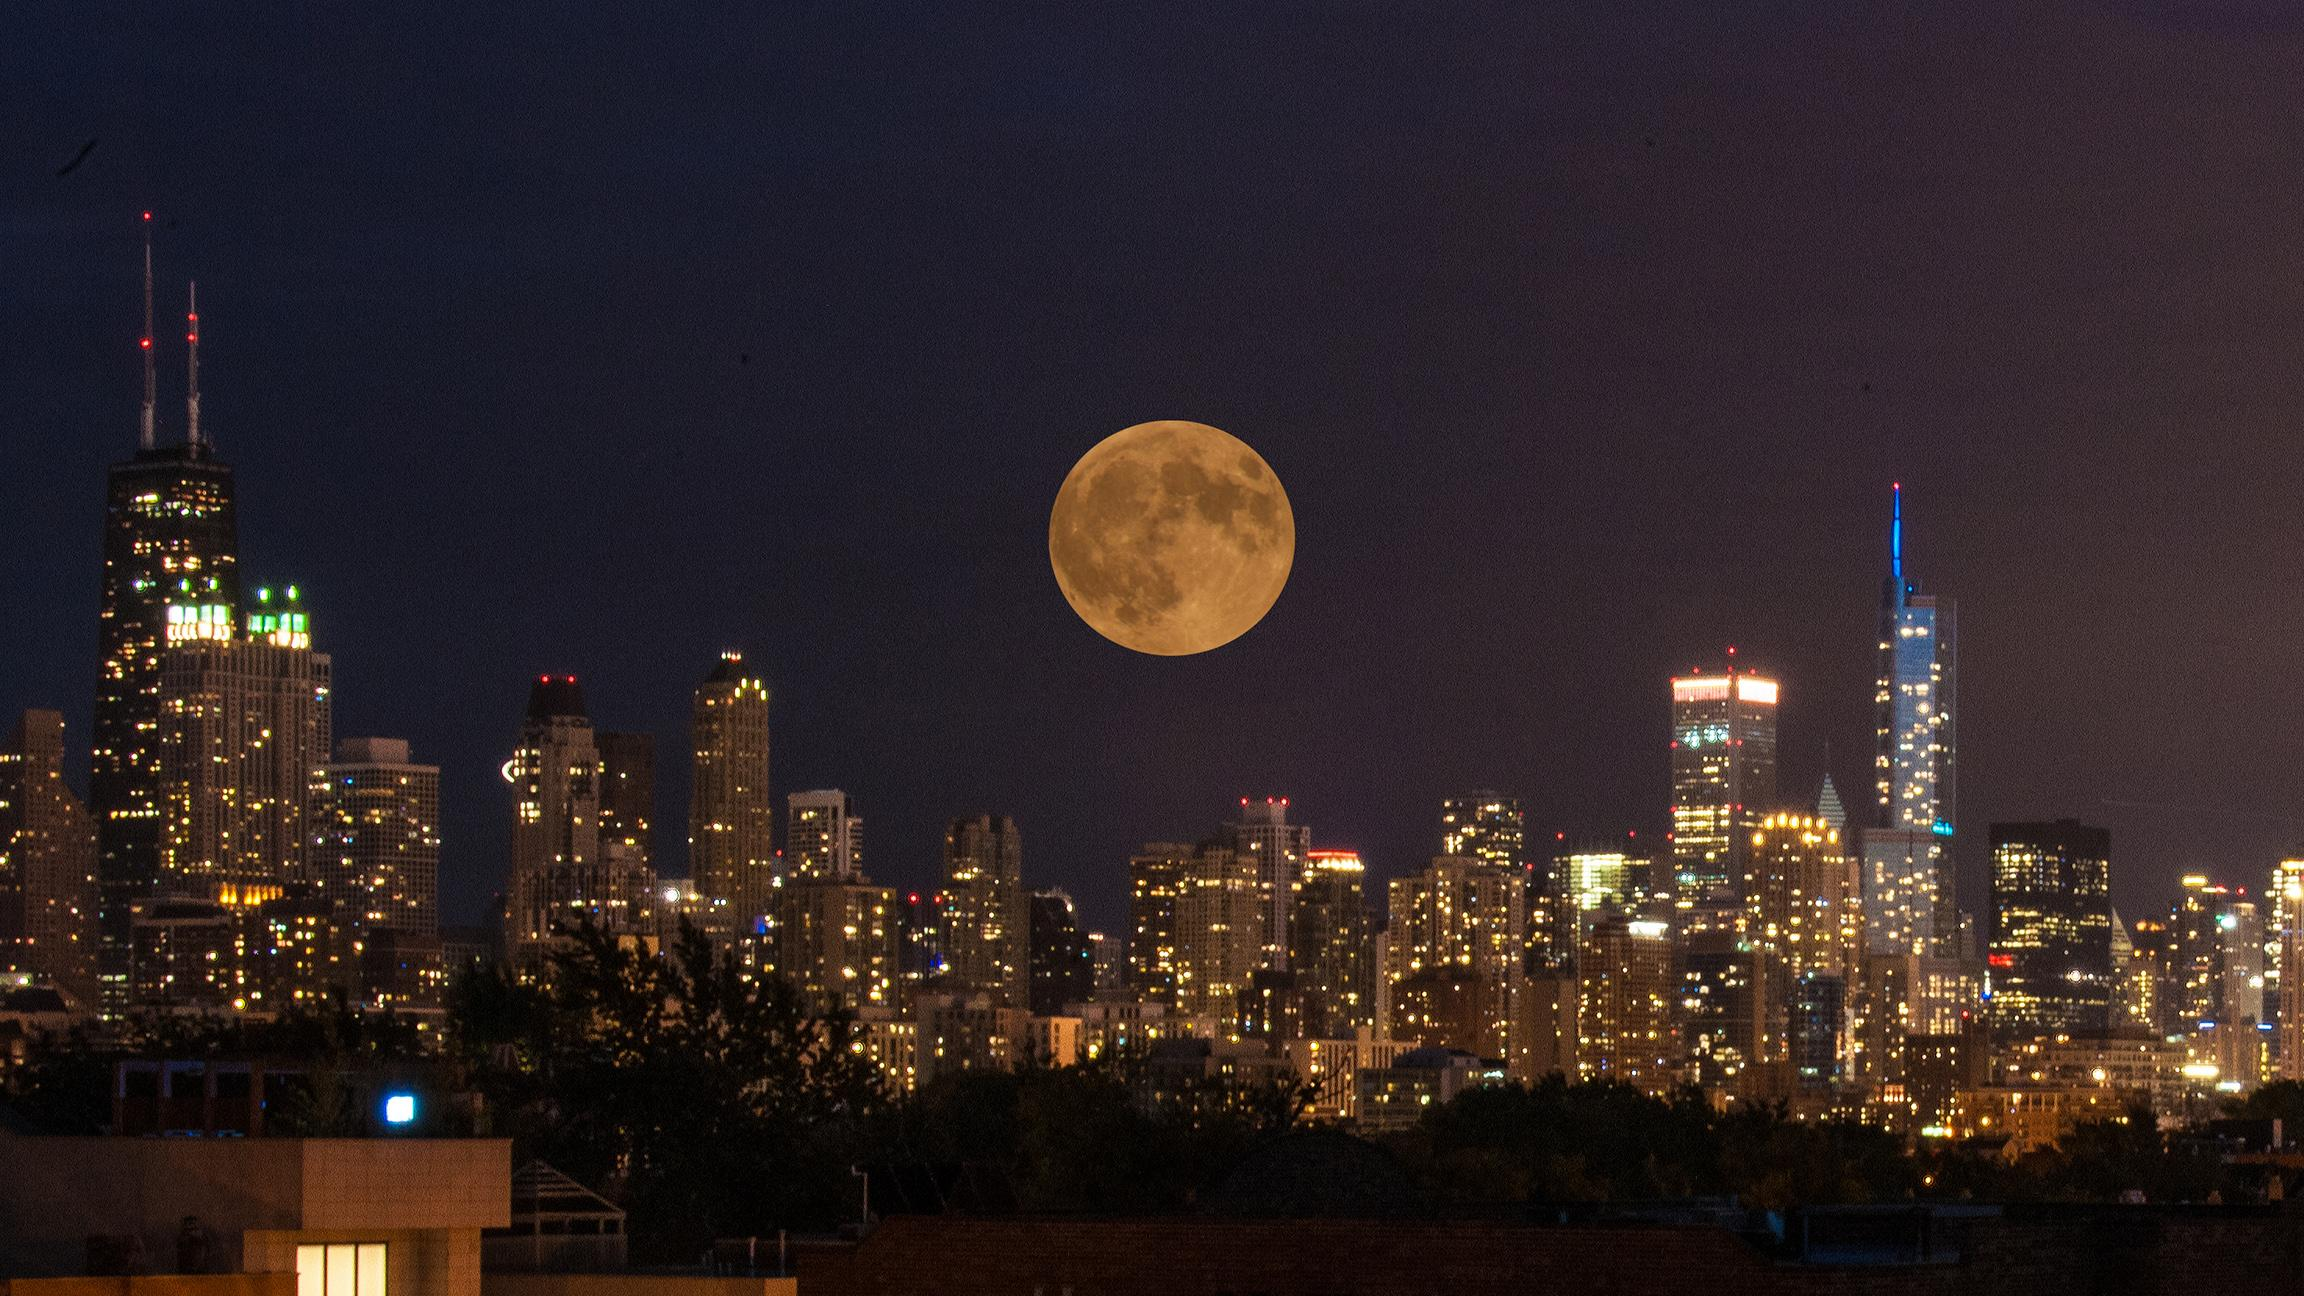 Chicago Tonight viewer J. Scott Sykora shared this photo of a harvest supermoon eclipse on Sept. 27, 2015.